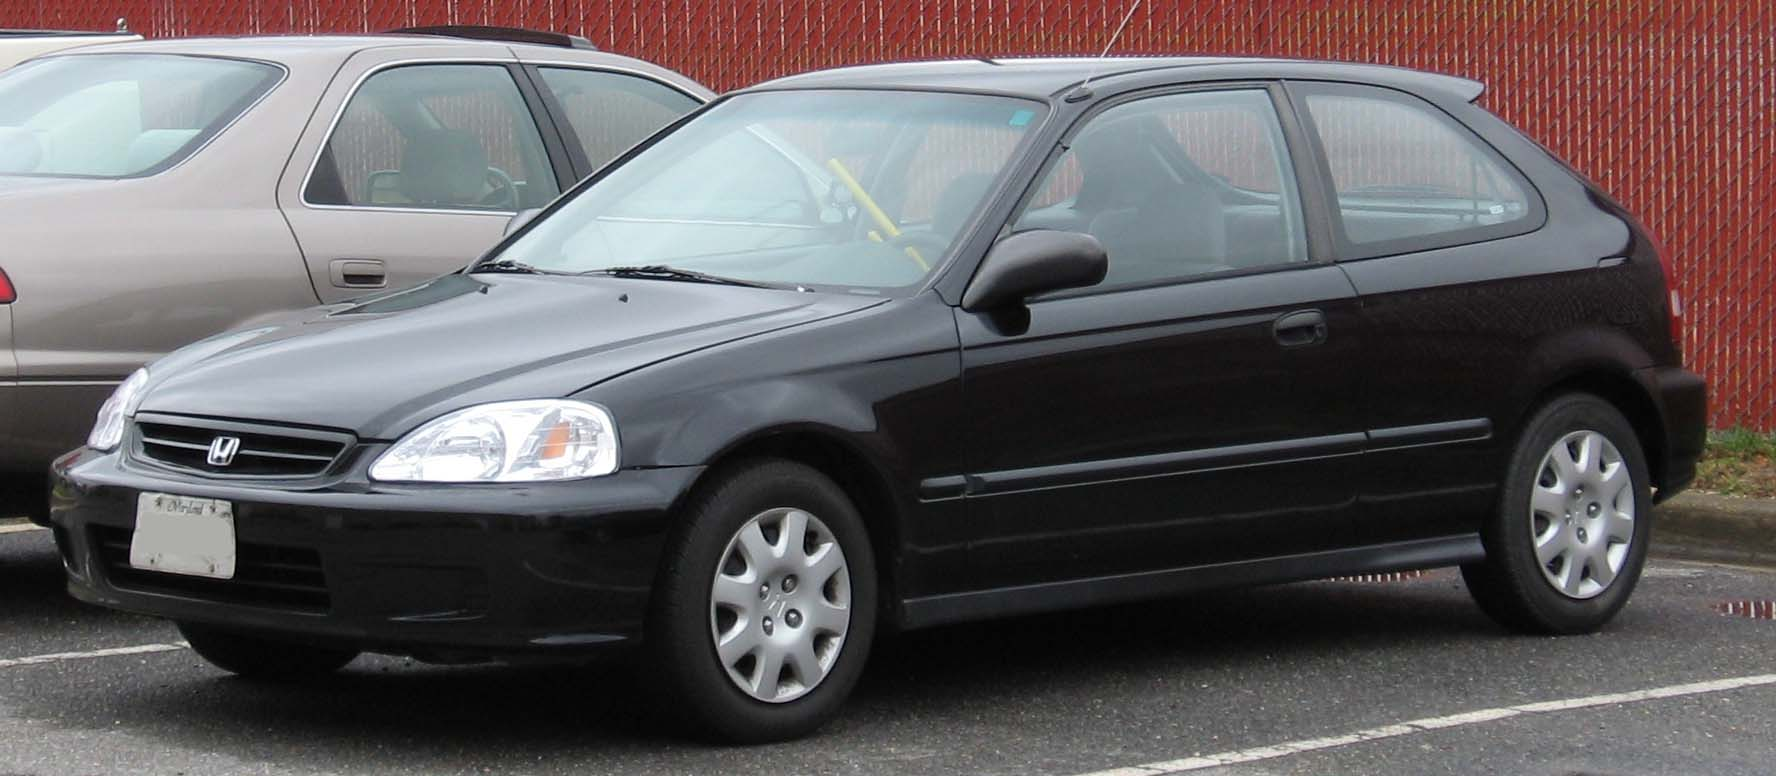 2000 Honda Civic #21 Honda Civic #21